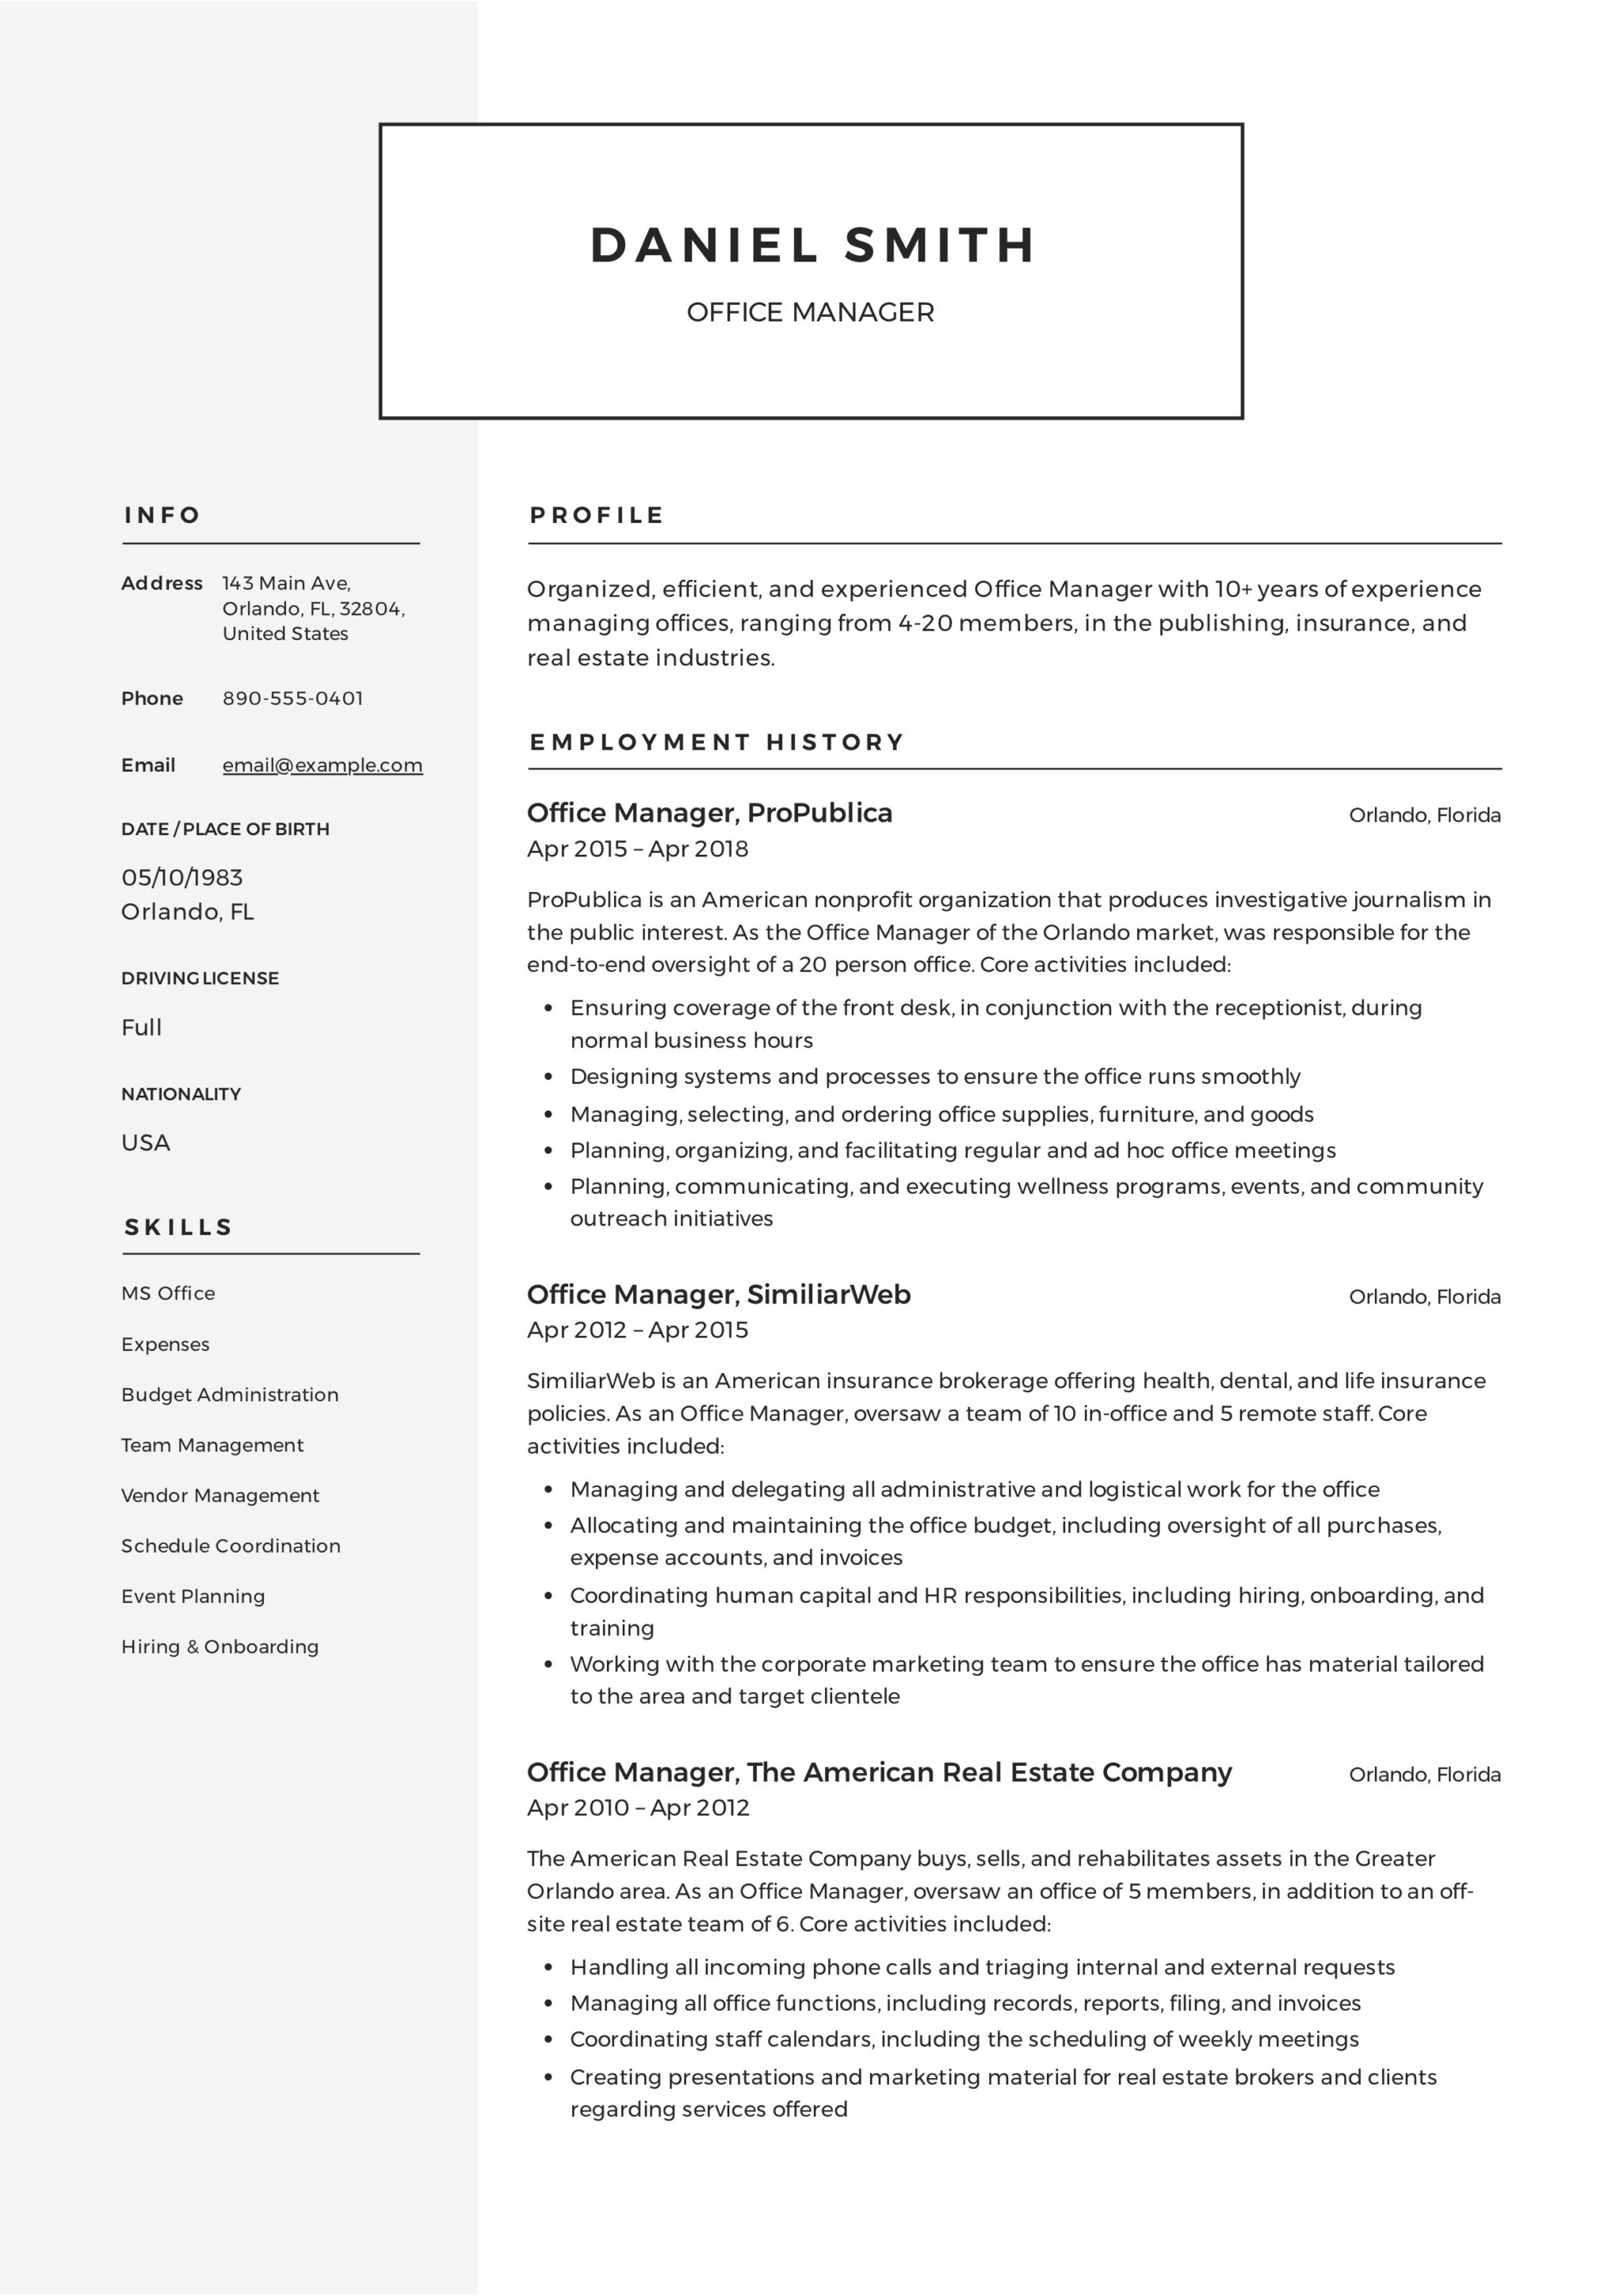 Sample Resume For Office Administrator Guide Office Manager Resume 43 12 Samples Pdf 2019